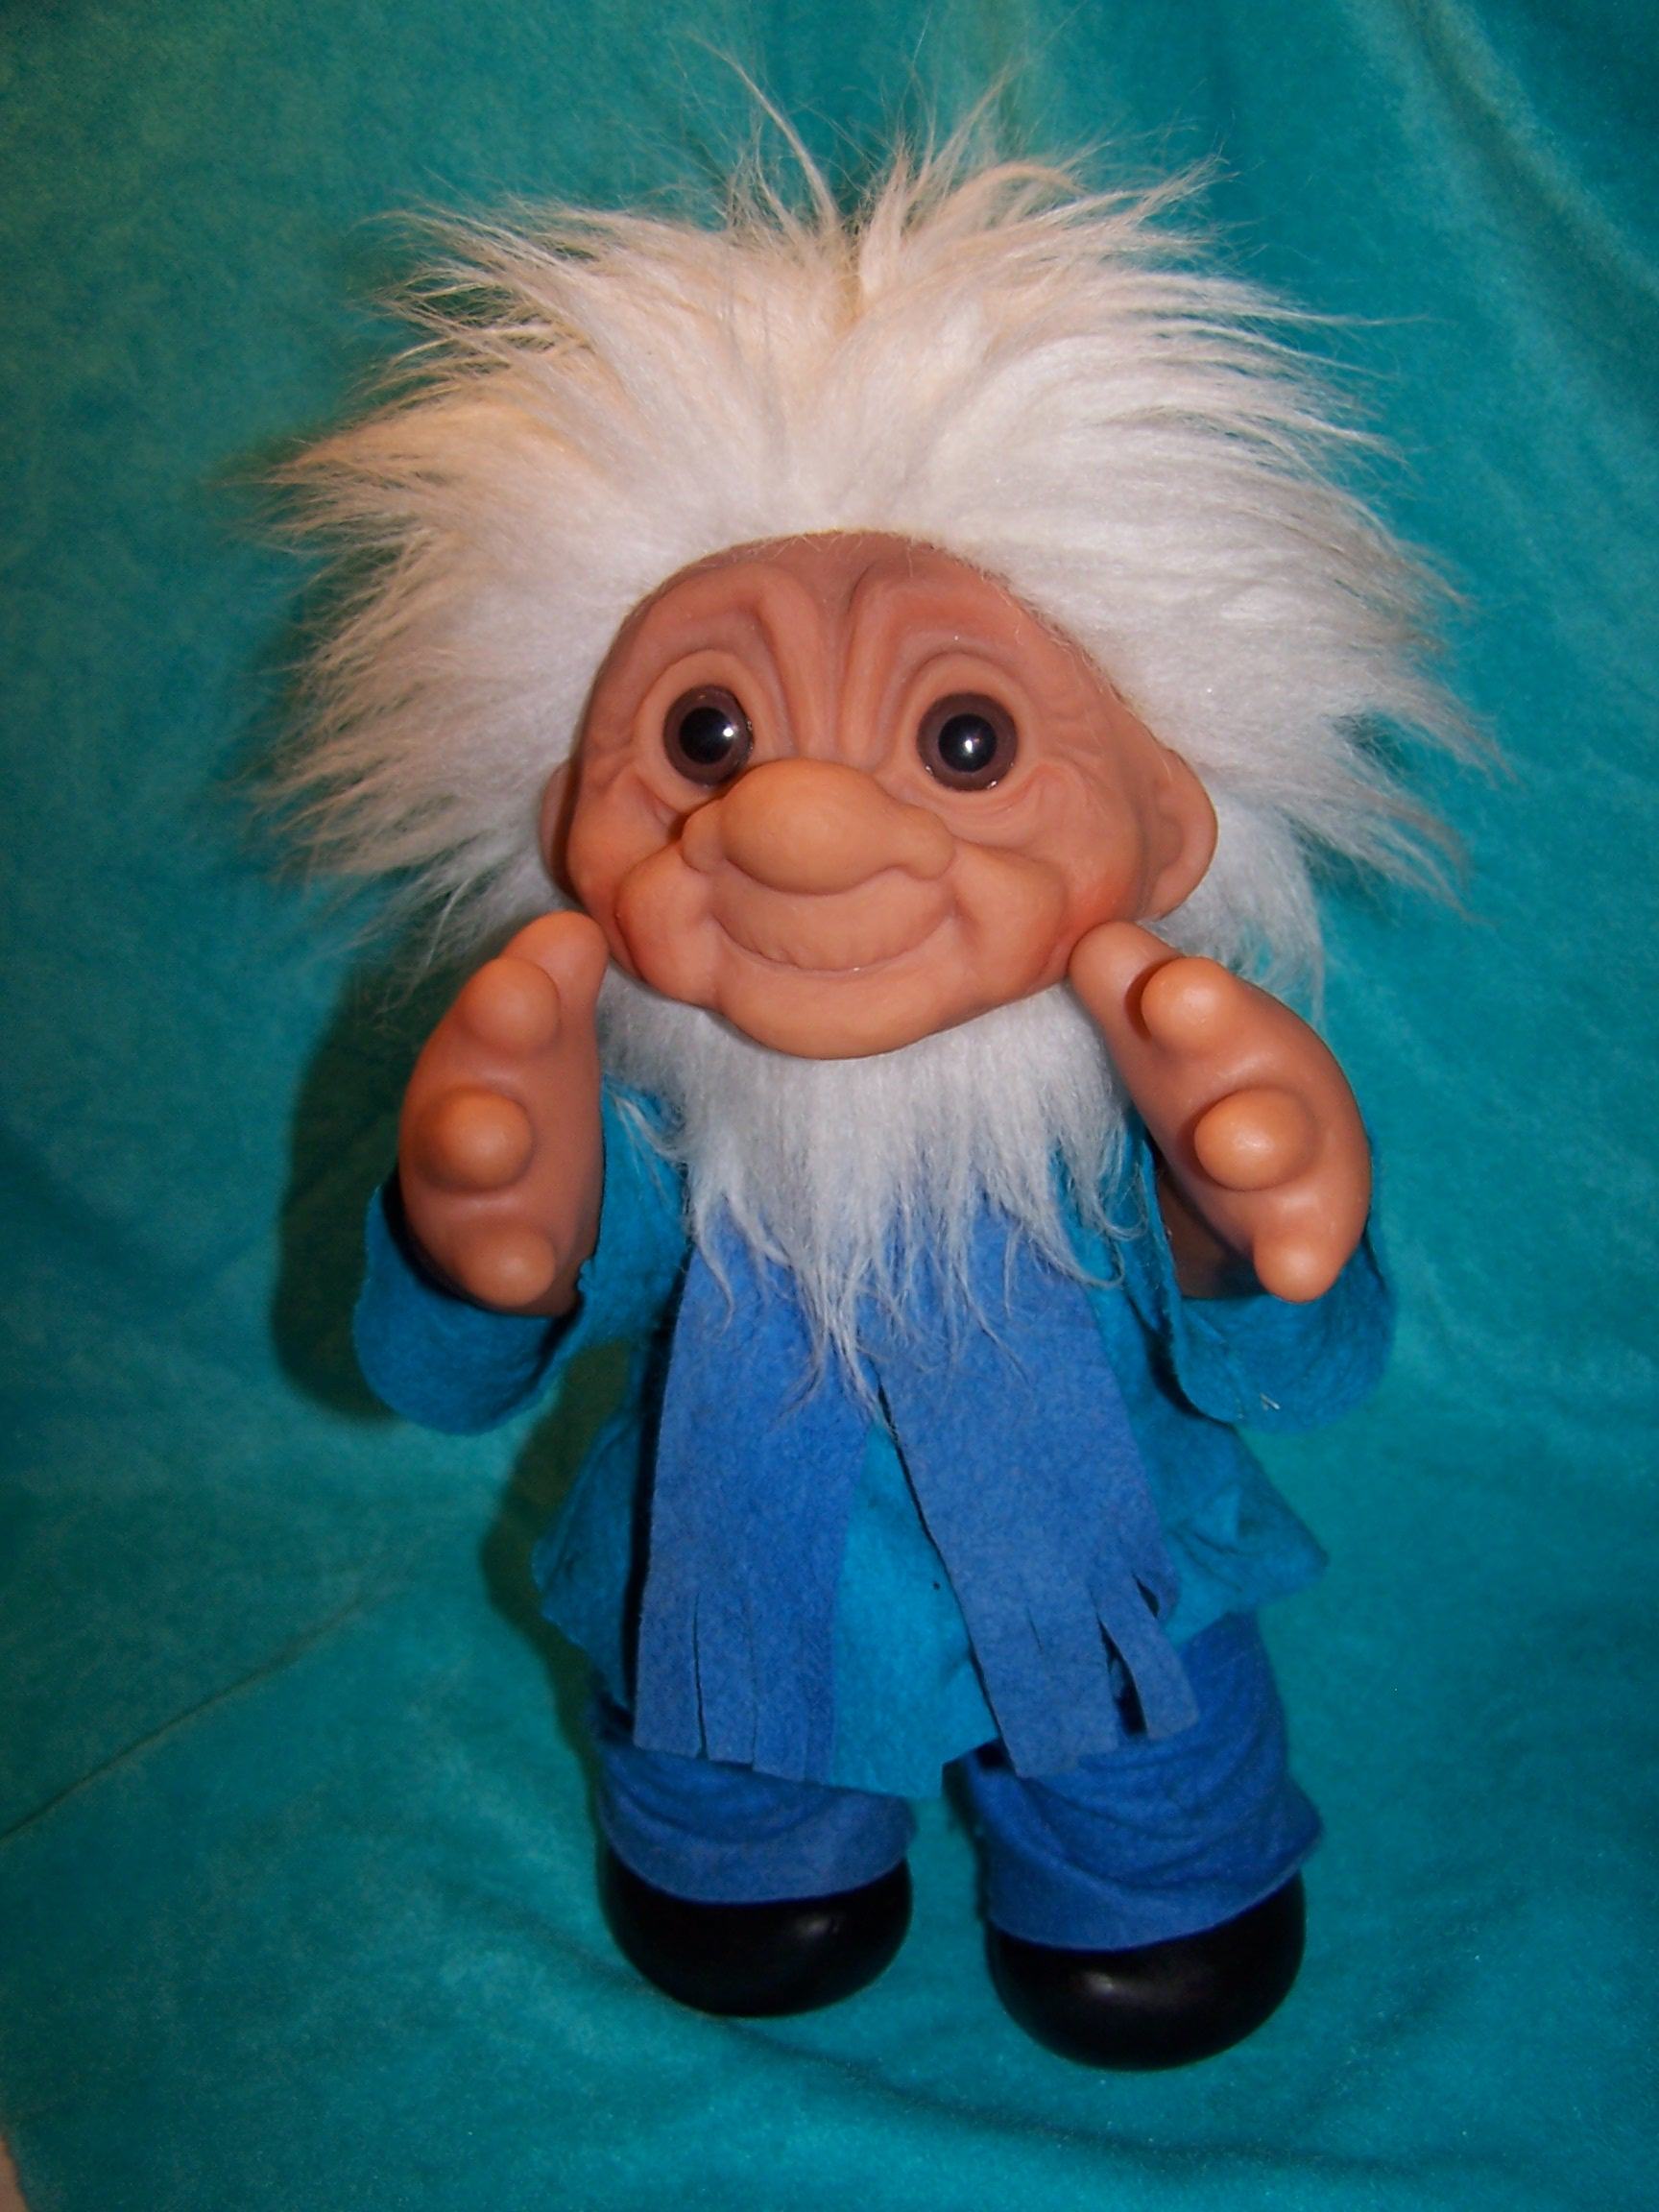 Image 5 of Norfin Troll Doll Grandpa, Thomas Dam, 1977 Denmark